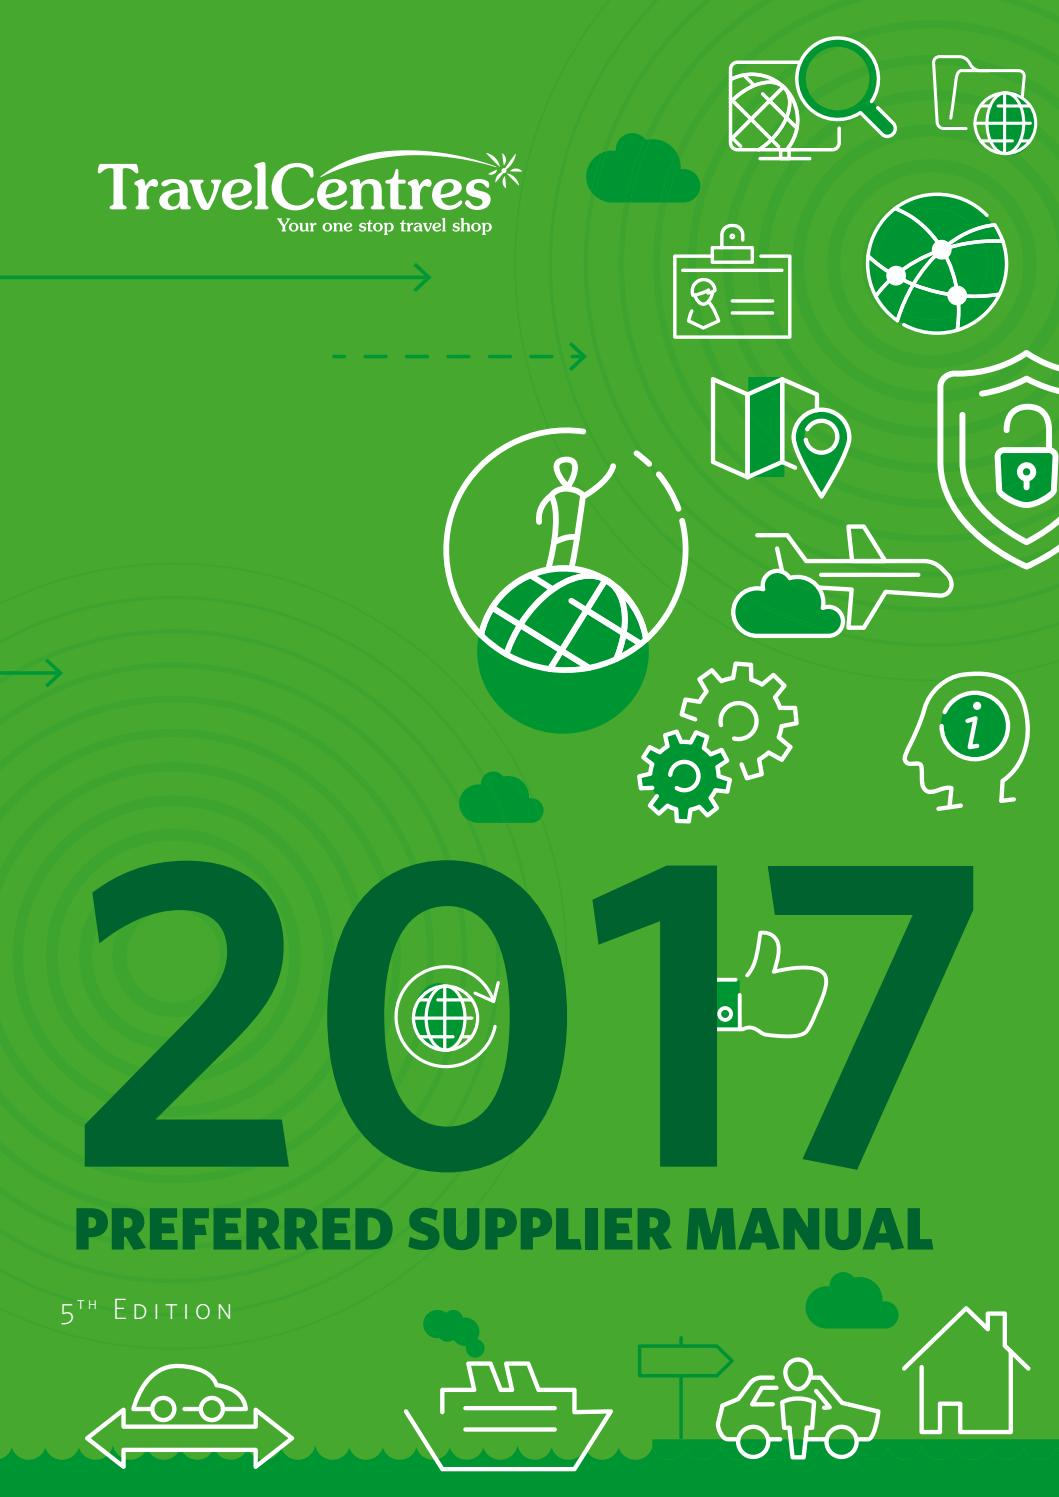 Supplier manual 2017 by Travel Centres - issuu